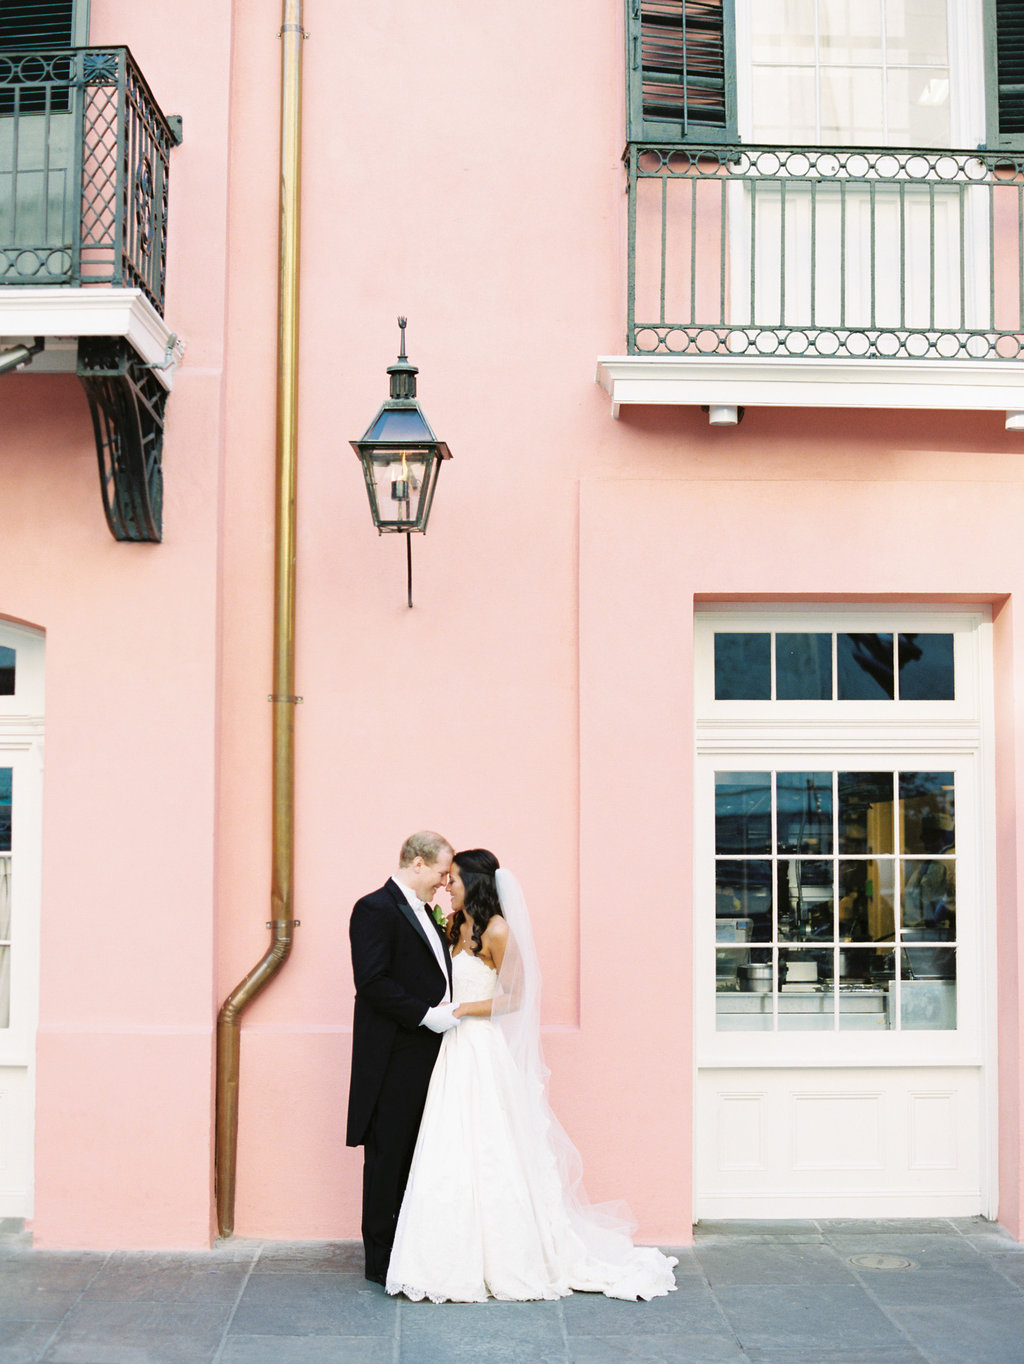 Wedding Planning | New Orleans Wedding | French Quarter Wedding | Sapphire Events | Ryan Ray Photography | White and Green Wedding | Formal Black Tie Wedding | Monique Lhuillier Dress | tux with tails | black tie wedding | formal wedding | Brennan's Restaurant | Royal Street | Blush and white wedding | Pink and white wedding